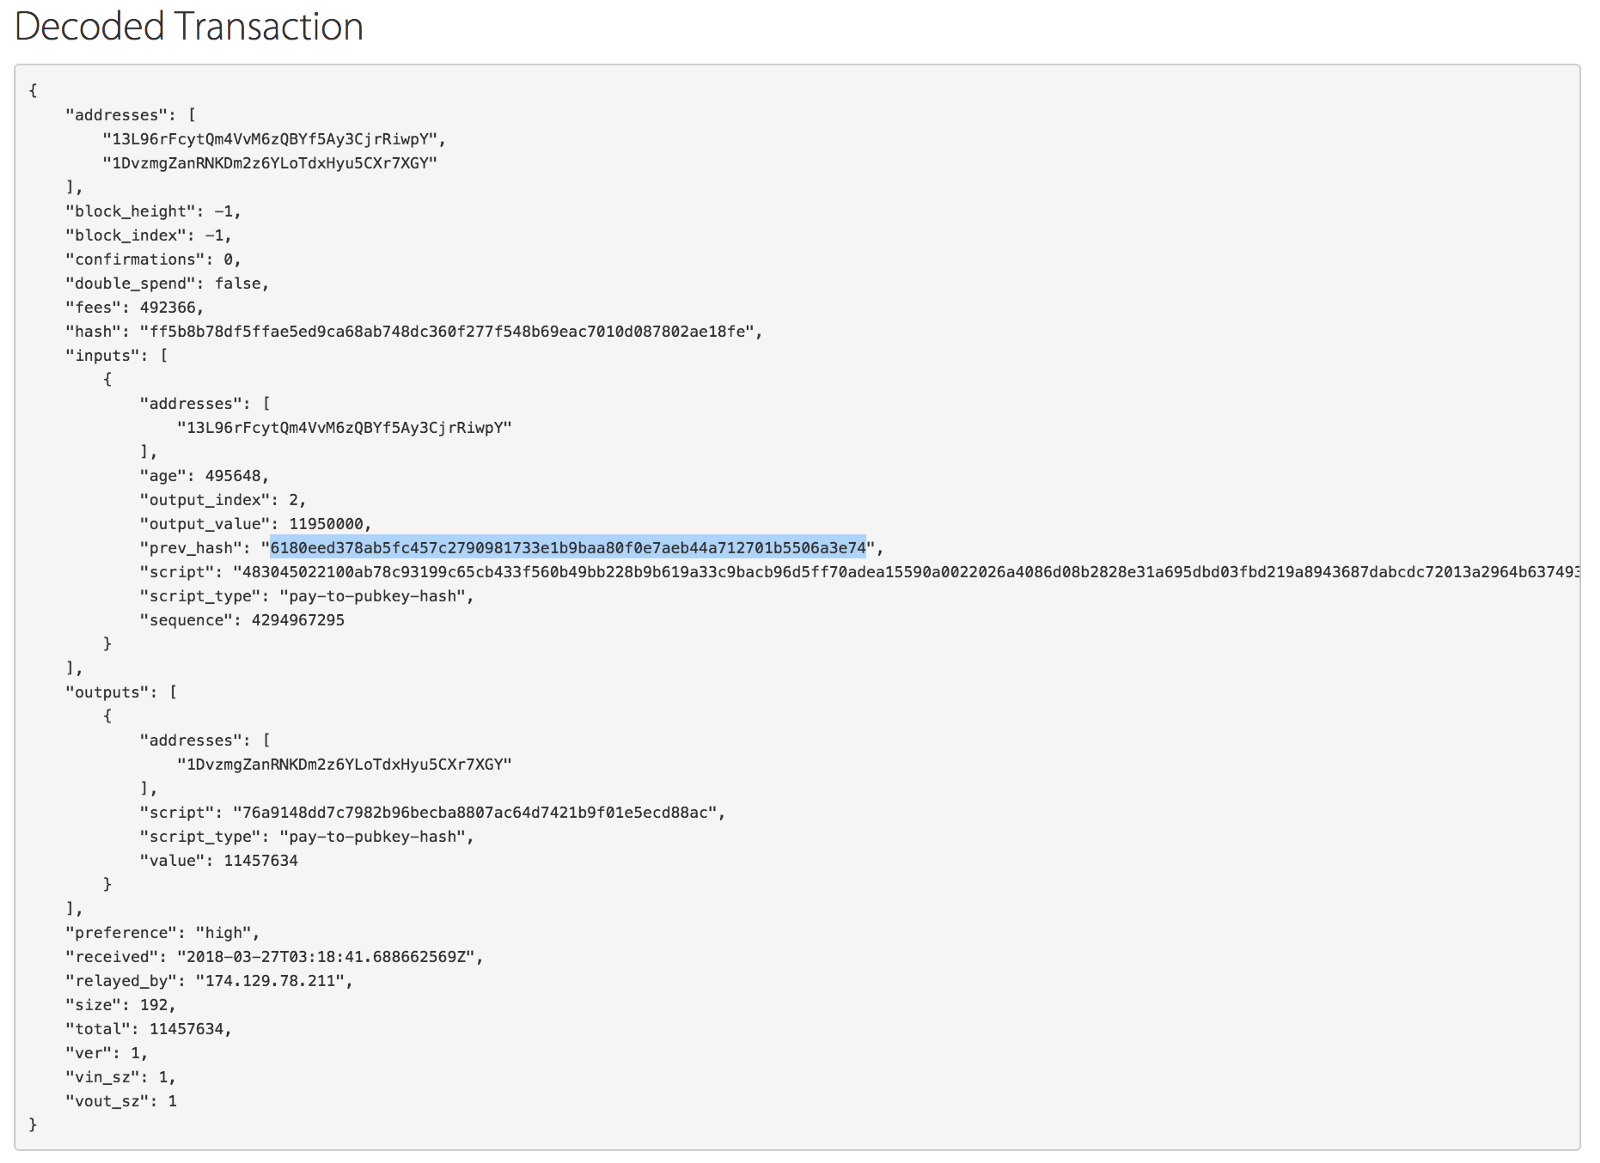 Deconstructing a confirmed bitcoin transaction - By